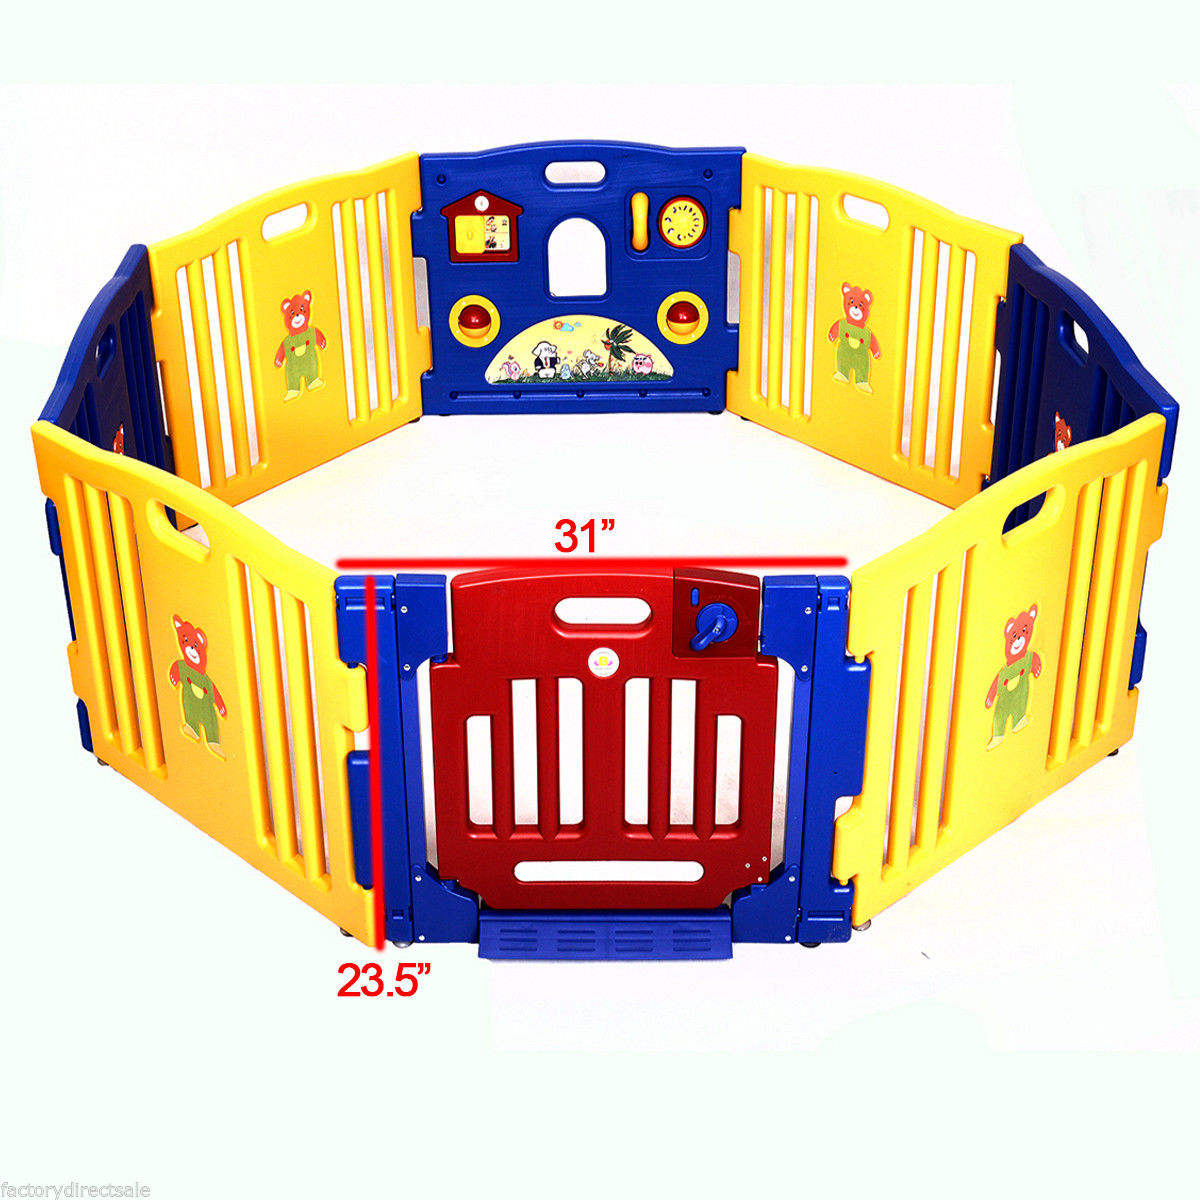 GHP 8-Panel Baby Kids Safety Playpen with Activity Board & Swinging Hinged Doors